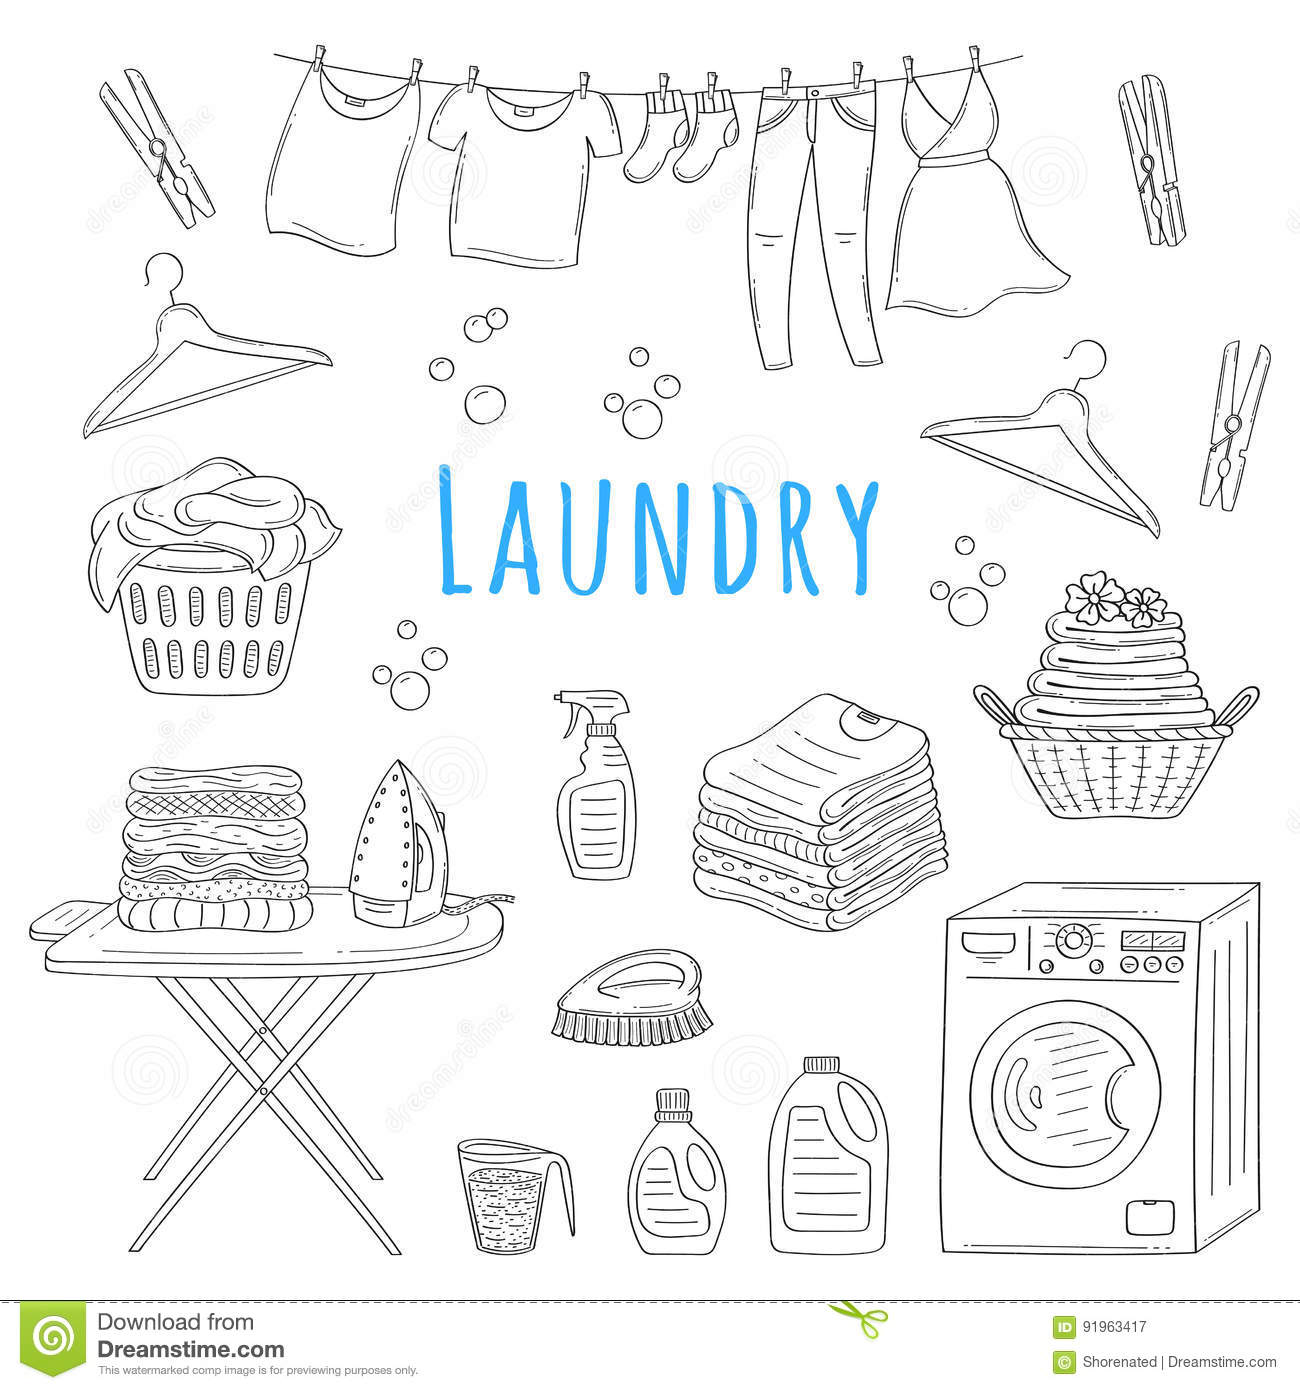 Laundry Service Drawing Vector Illustration